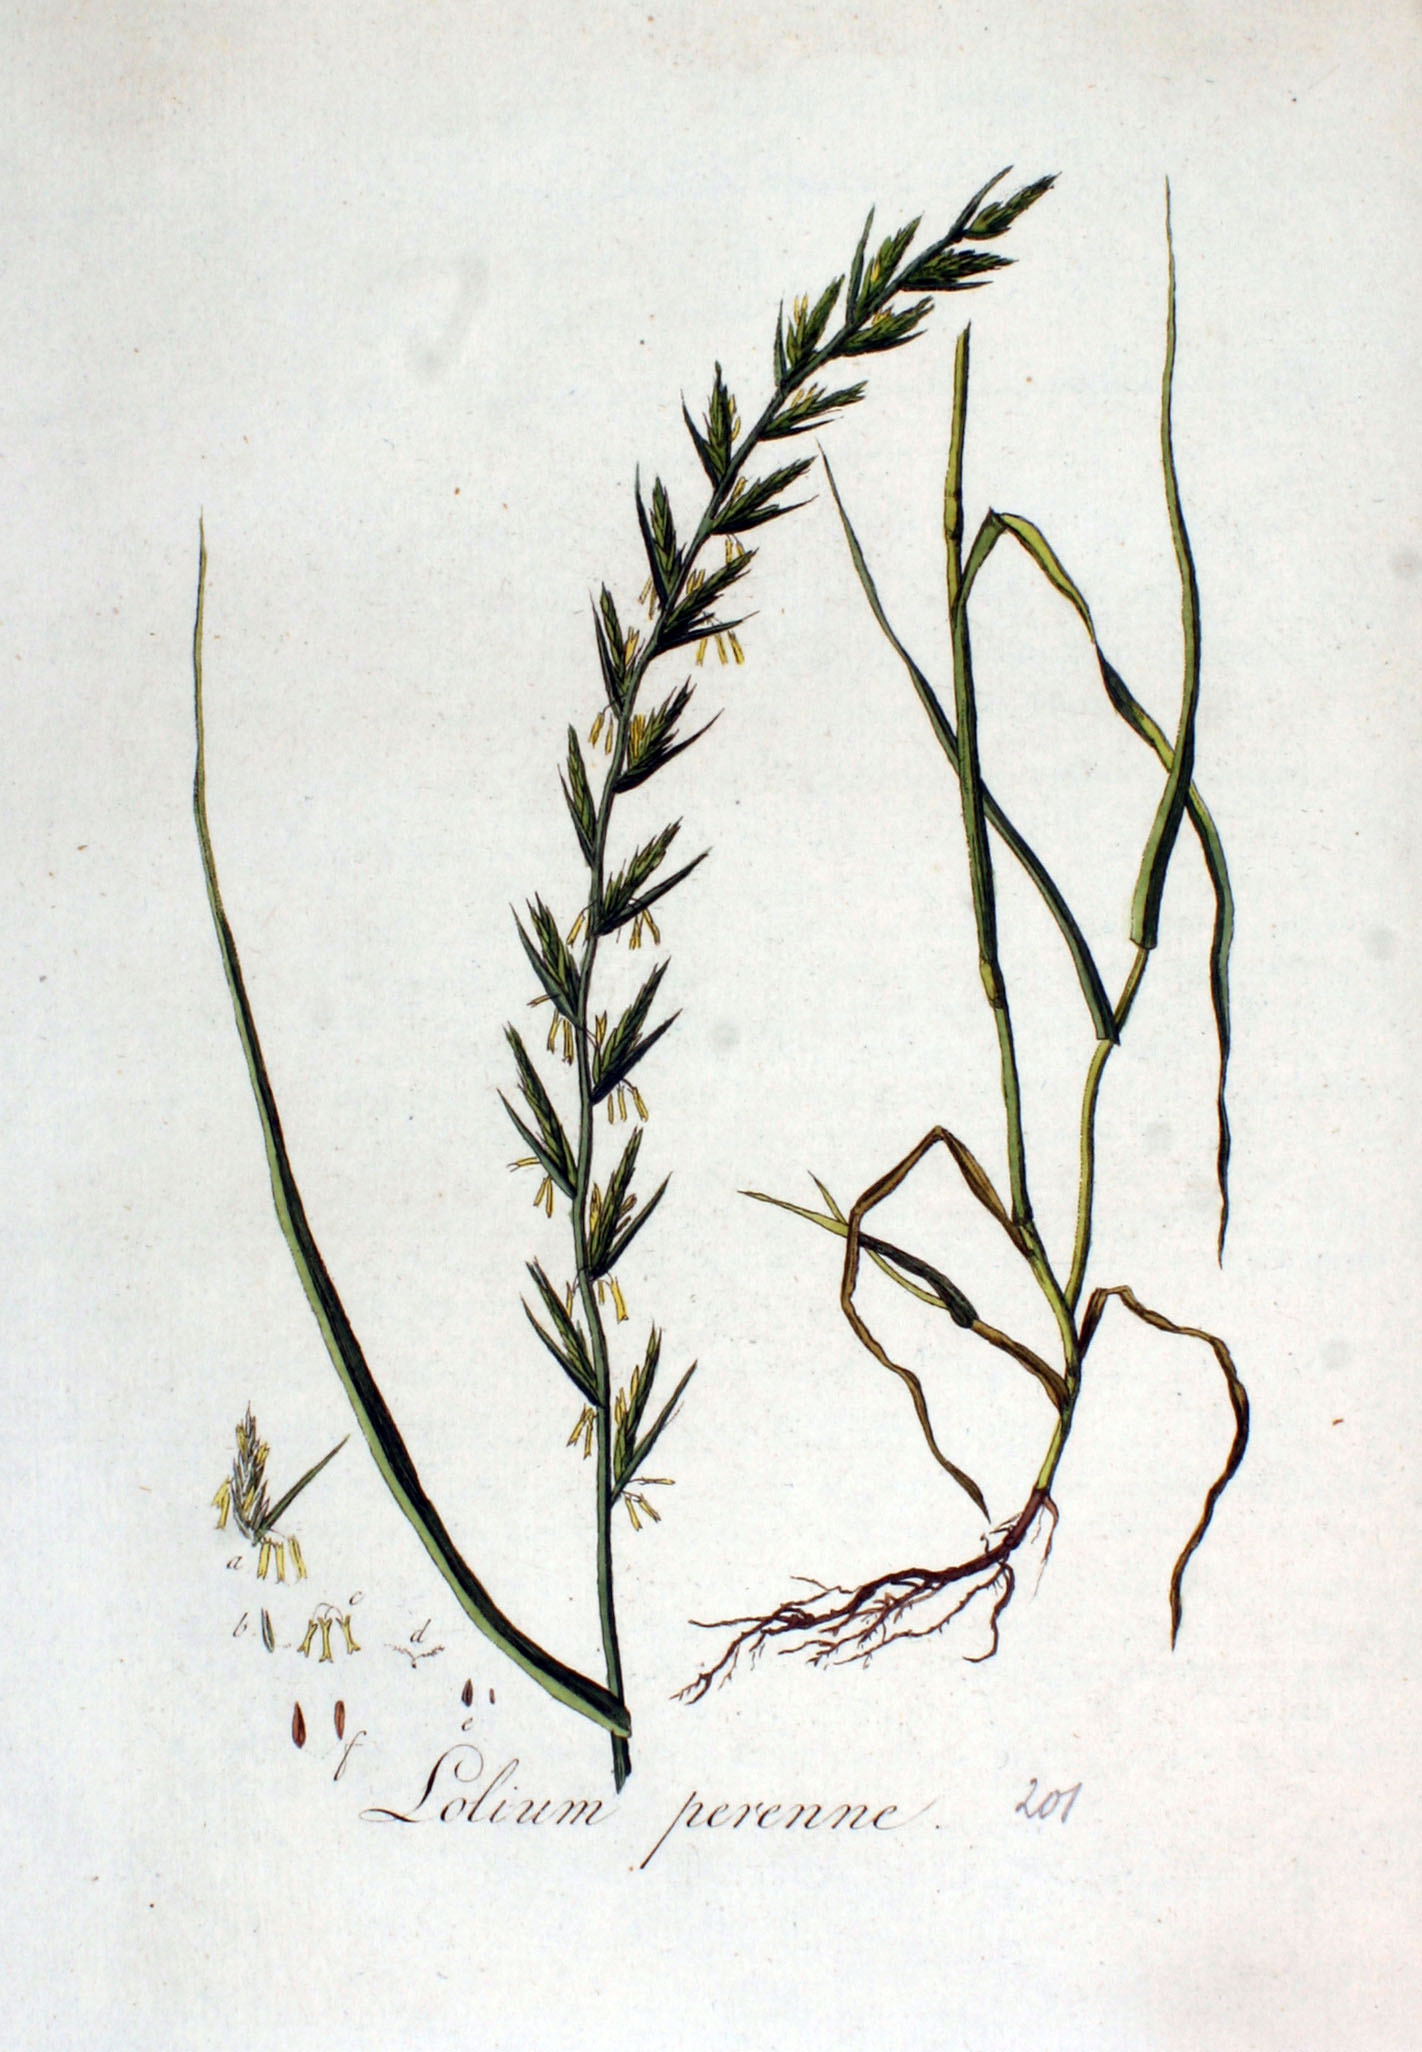 Image:    Lolium perenne  click to enlarge, image via Wikimedia Commons.